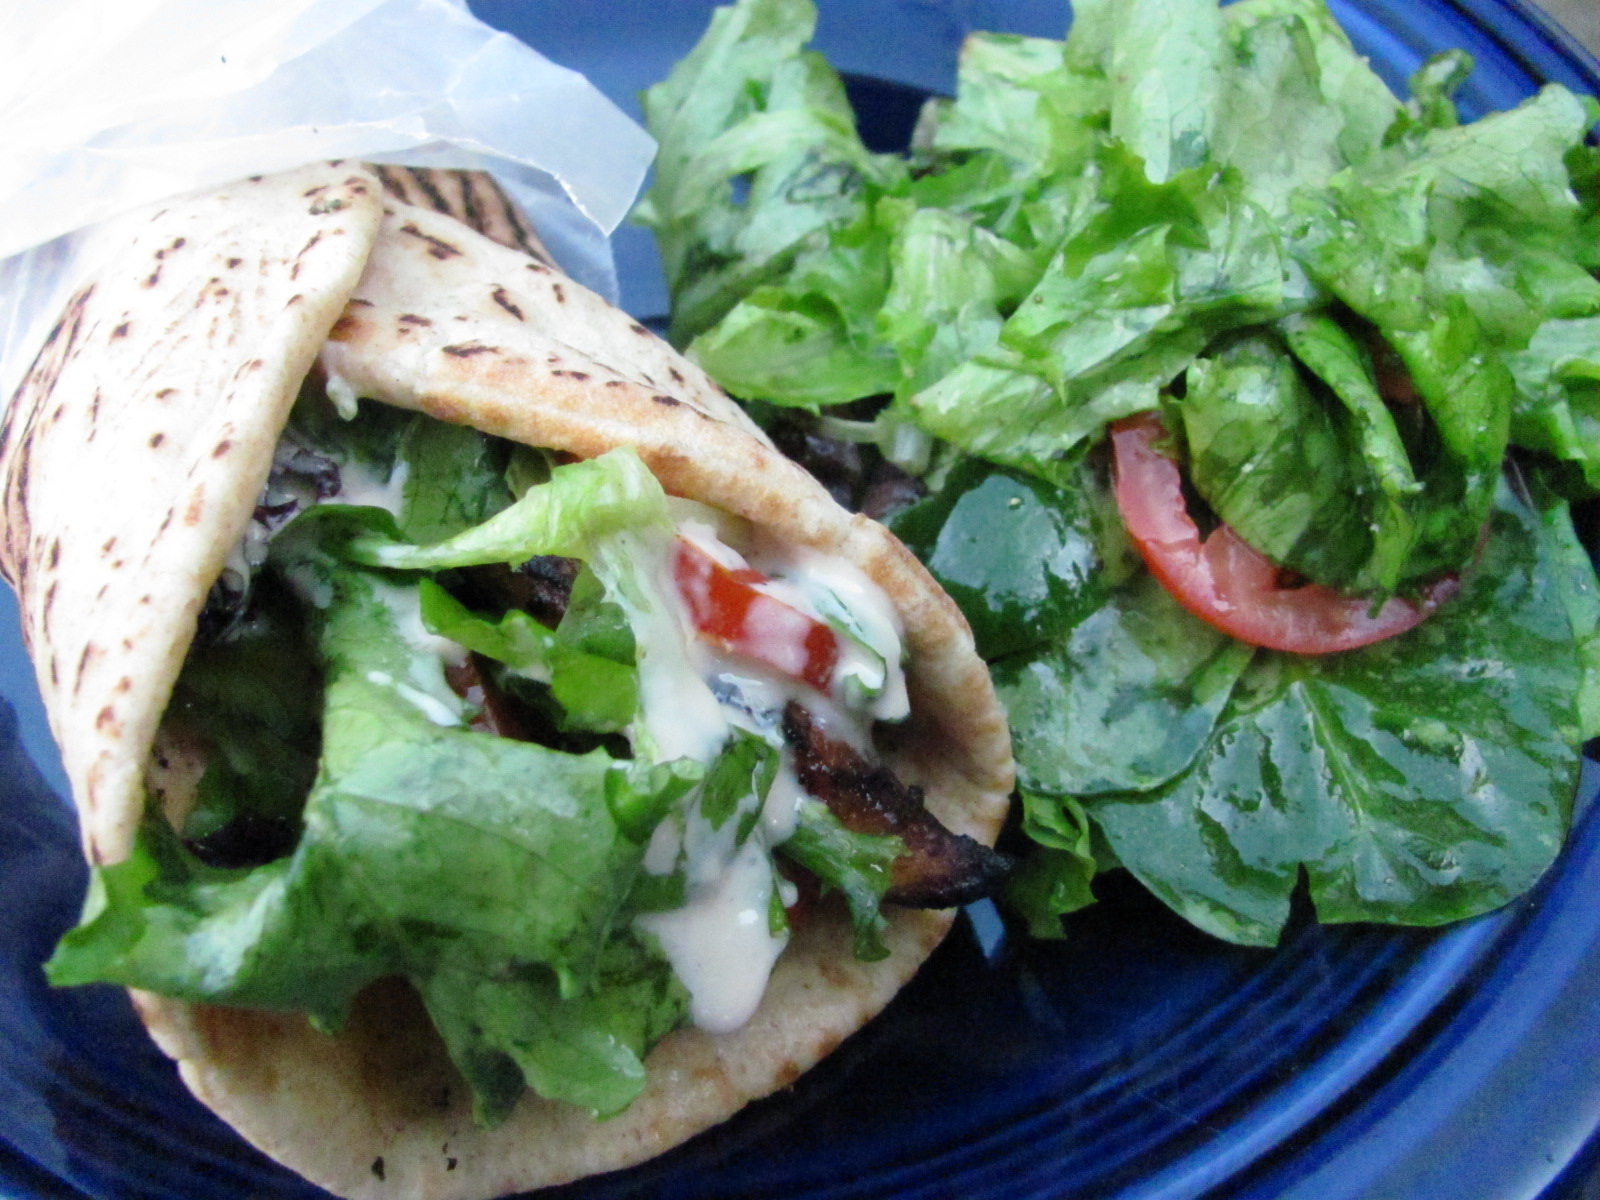 Wrap Chicken In Pita Bread Add Lettuce Tomato And Onion If Desired And Drizzle On Tahini Sauce